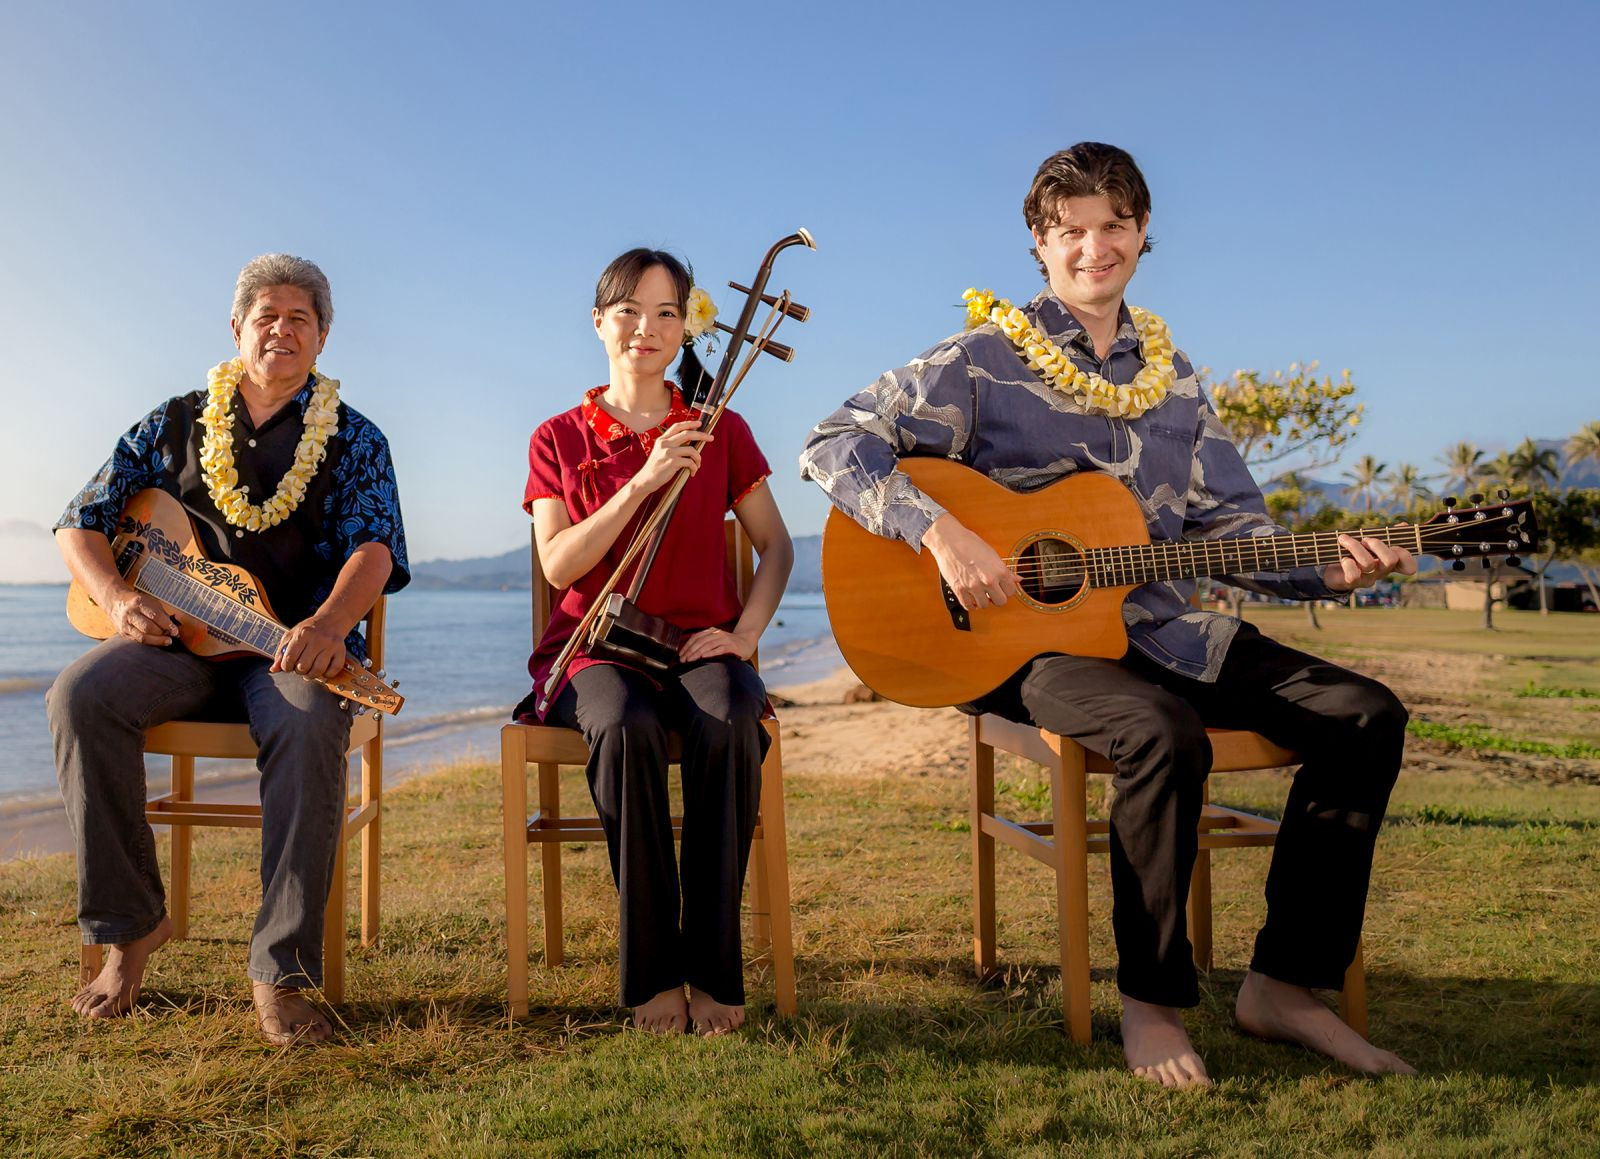 Live @ the MACC Features Trio 'Across the Sea' at Free Streaming Concert March 6